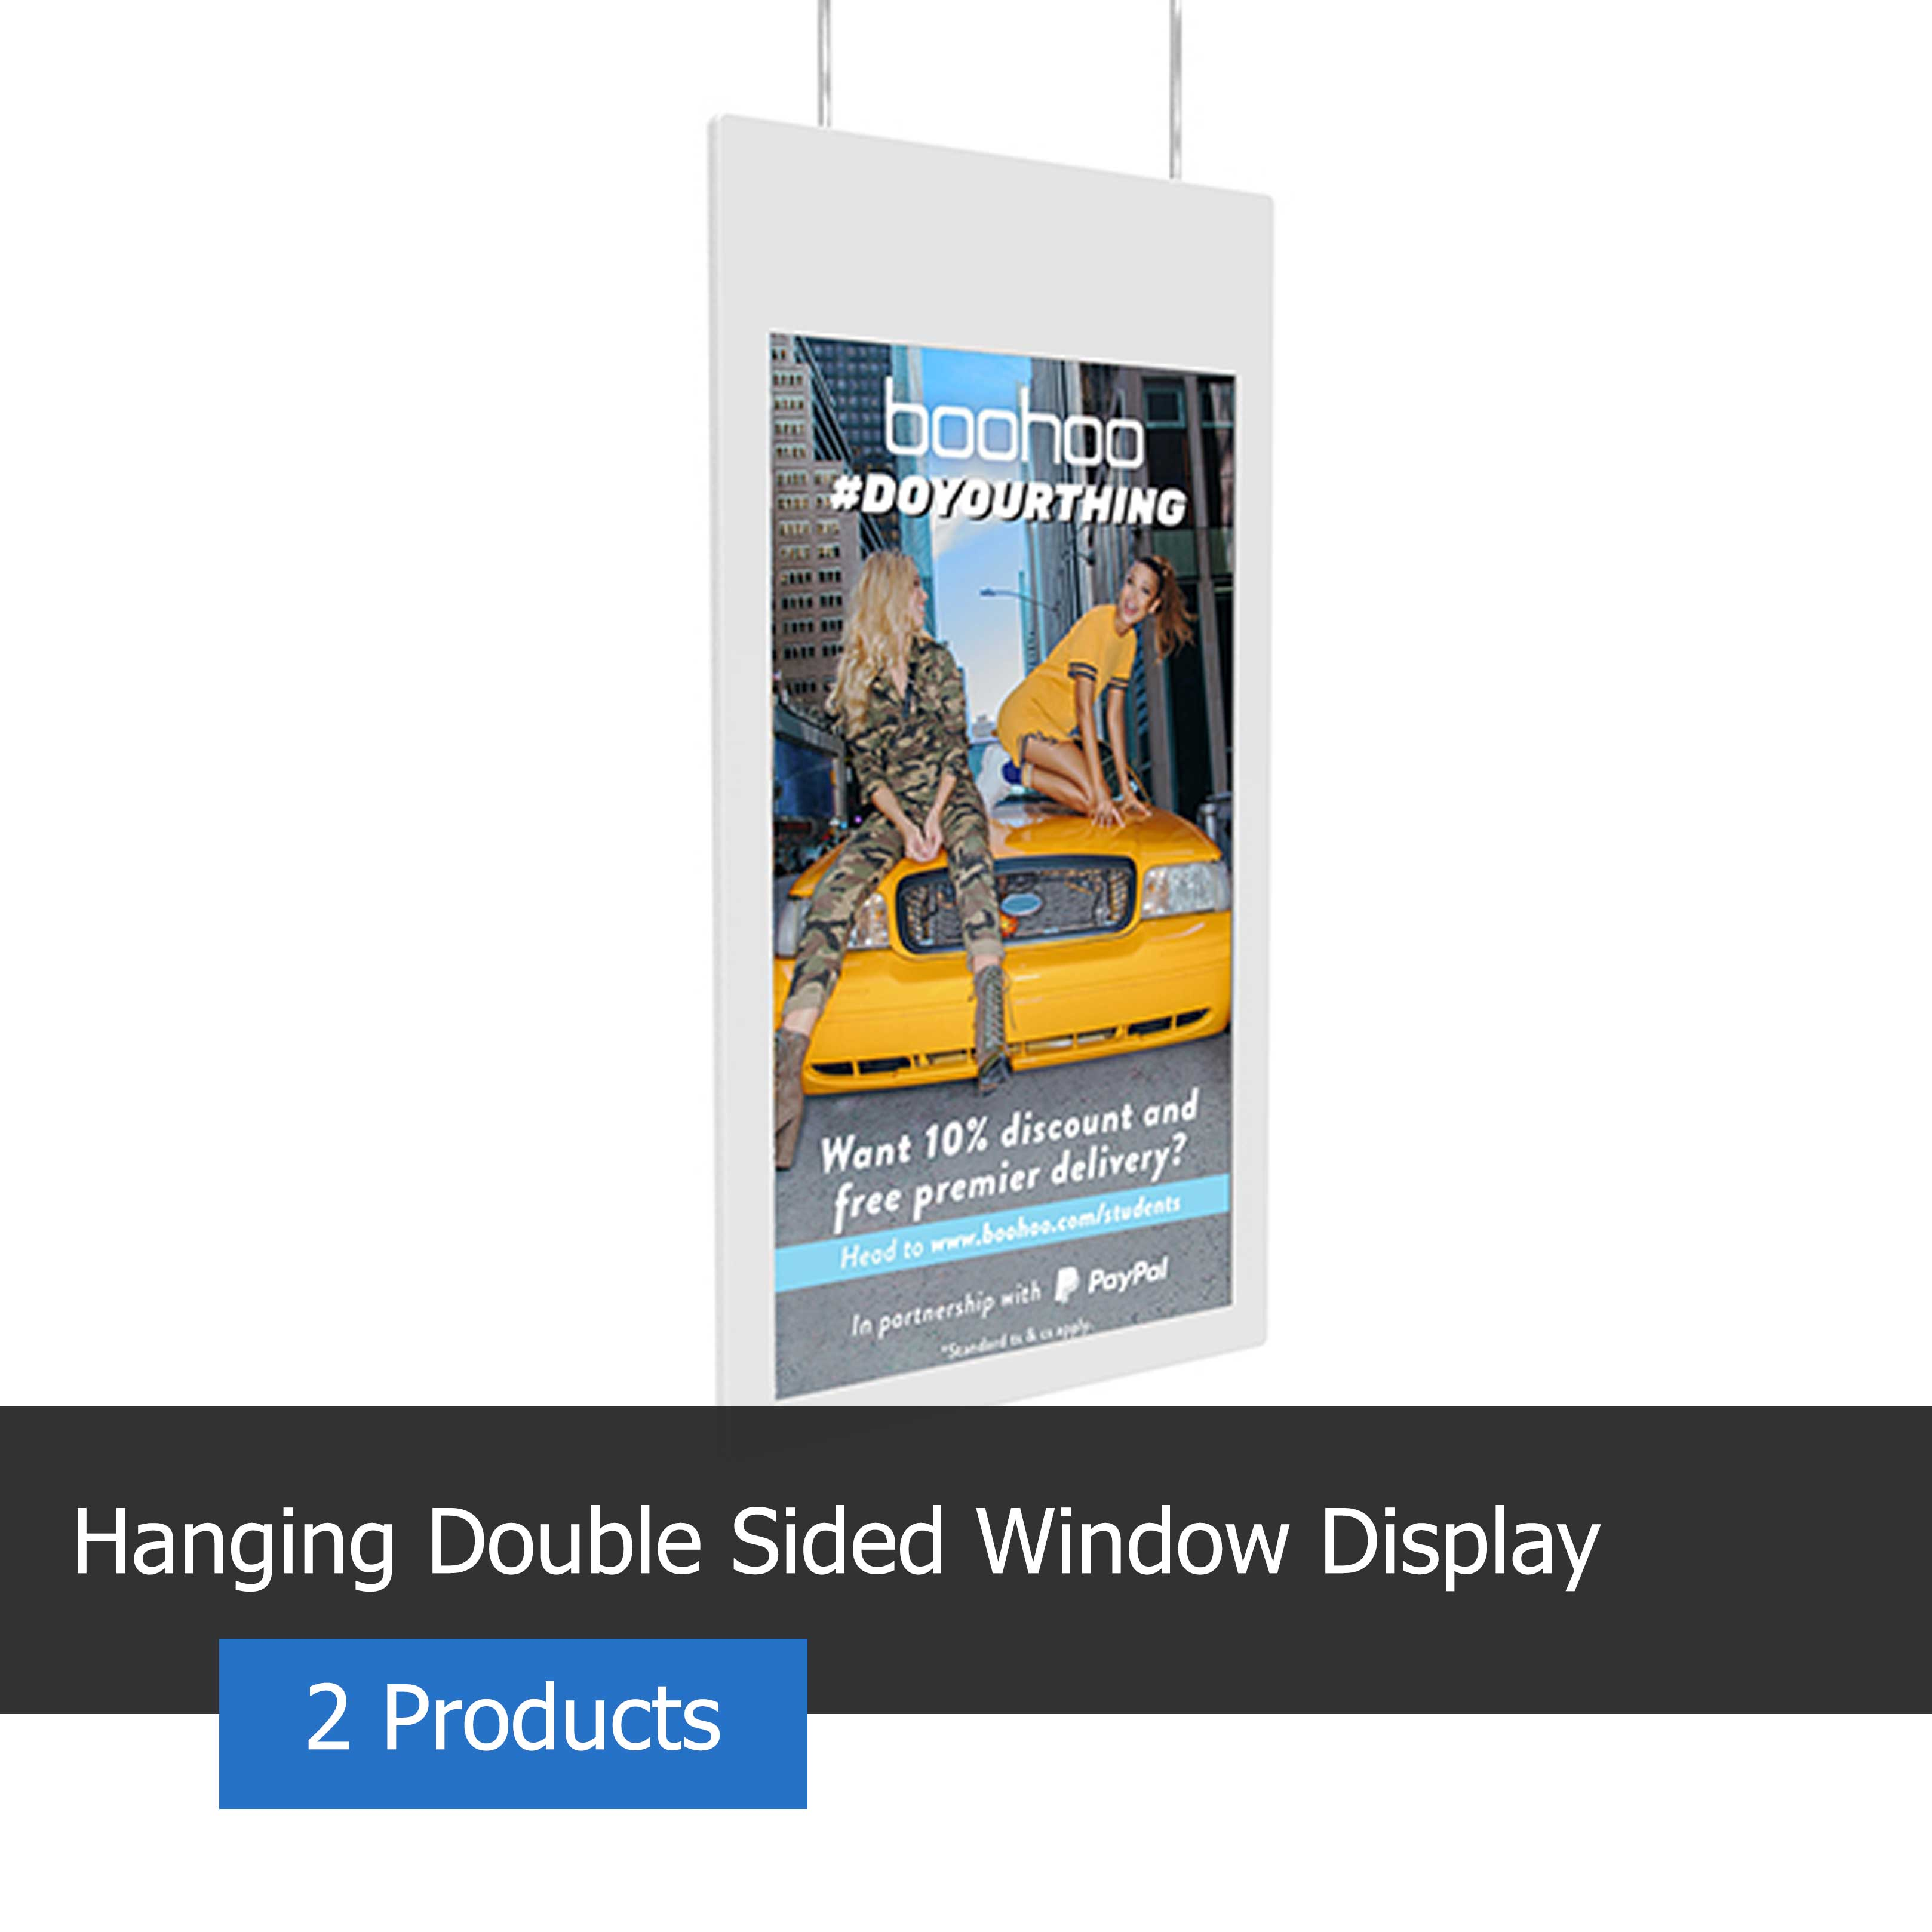 Image of a hanging double sided window display